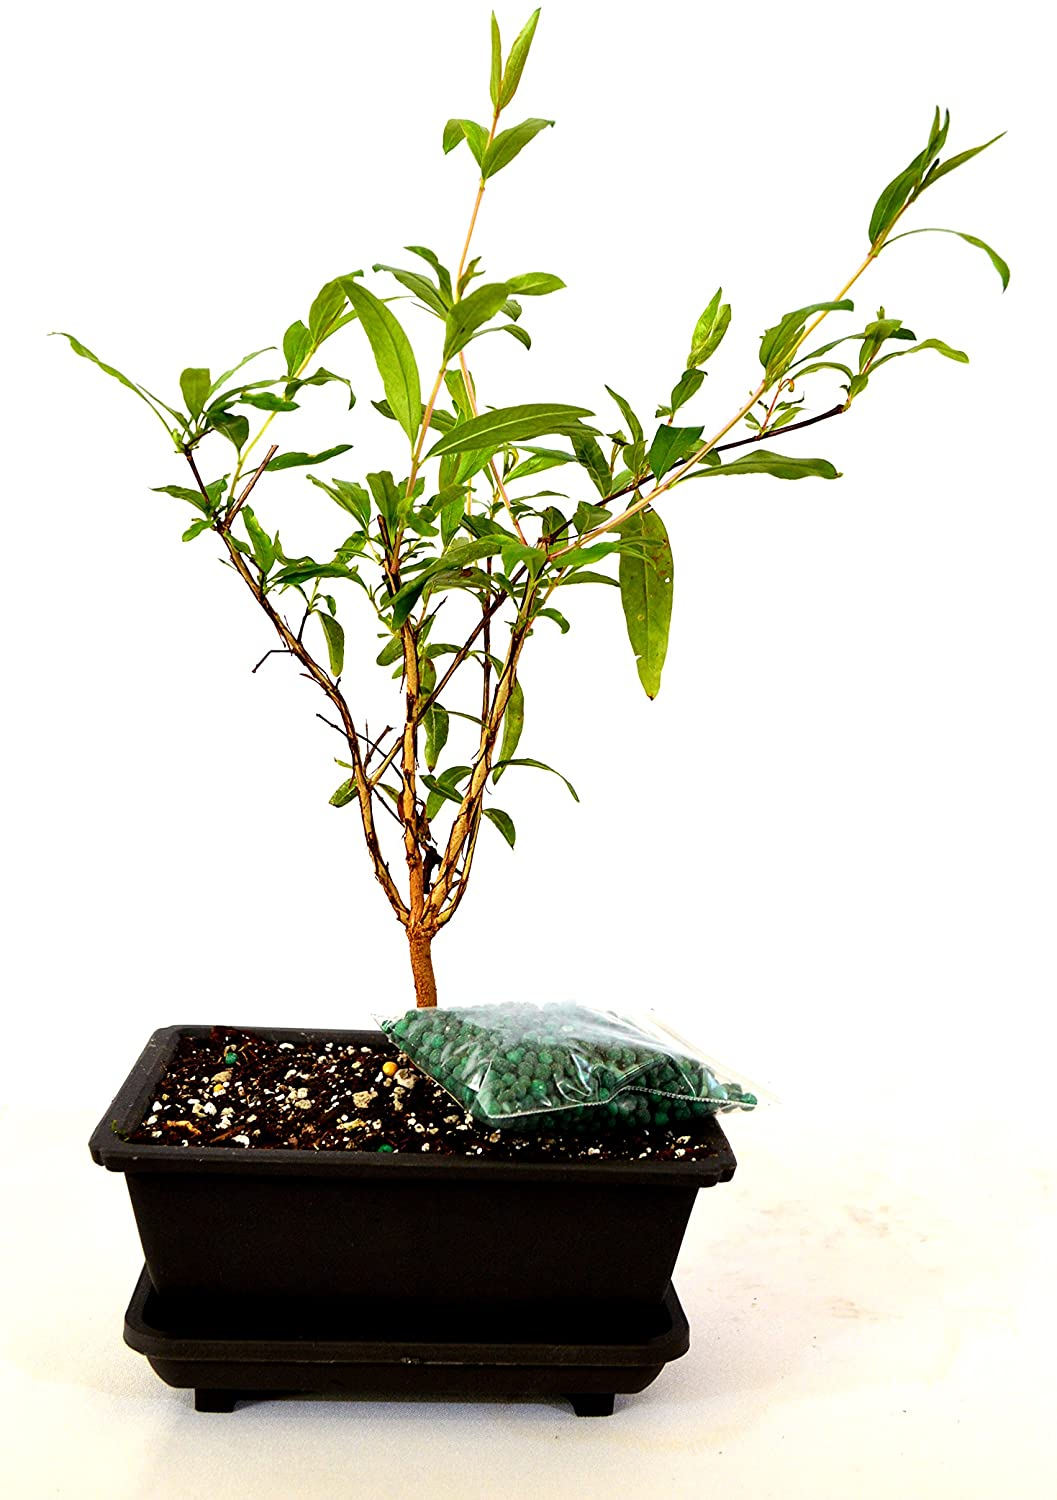 9GreenBox - Dwarf Pomegranate Mame Bonsai with Water Tray and Fertilizer Live Plant Ornament Decor for Home, Kitchen, Office, Table, Desk - Attracts Zen, Luck, Good Fortune - Non-GMO, Grown in the USA